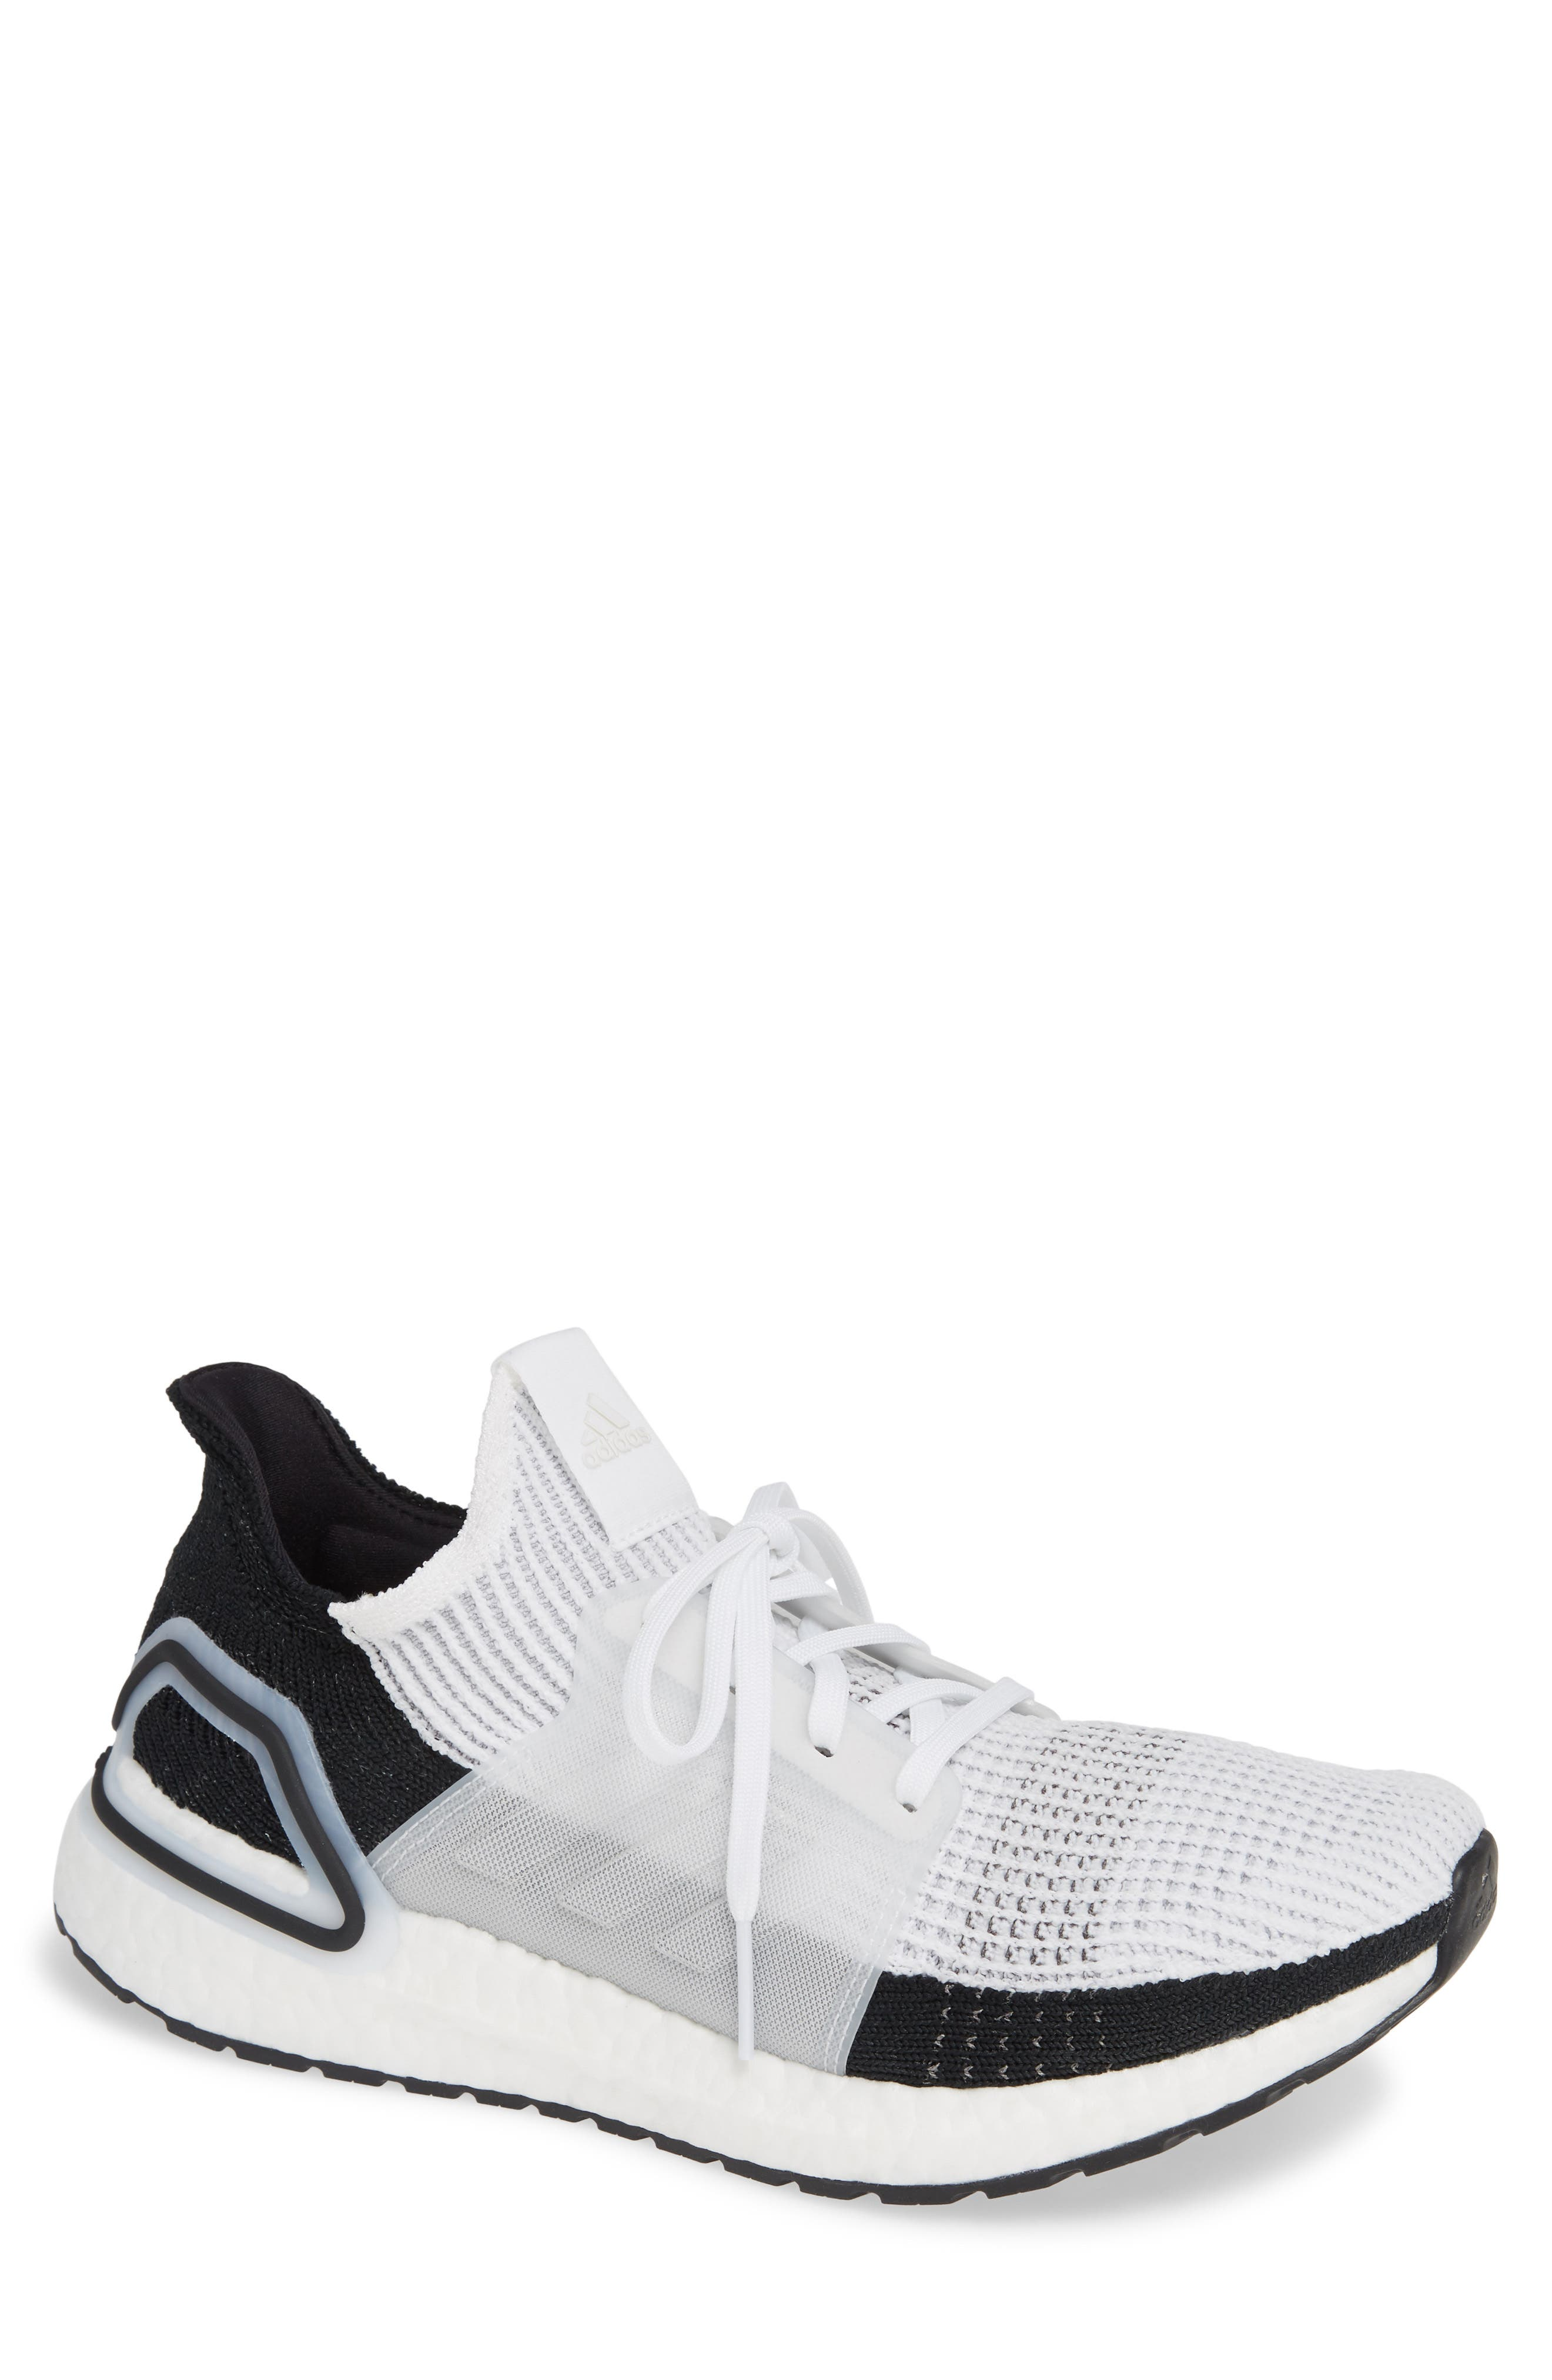 brand new 51eb6 15c03 adidas ultraboost   Nordstrom